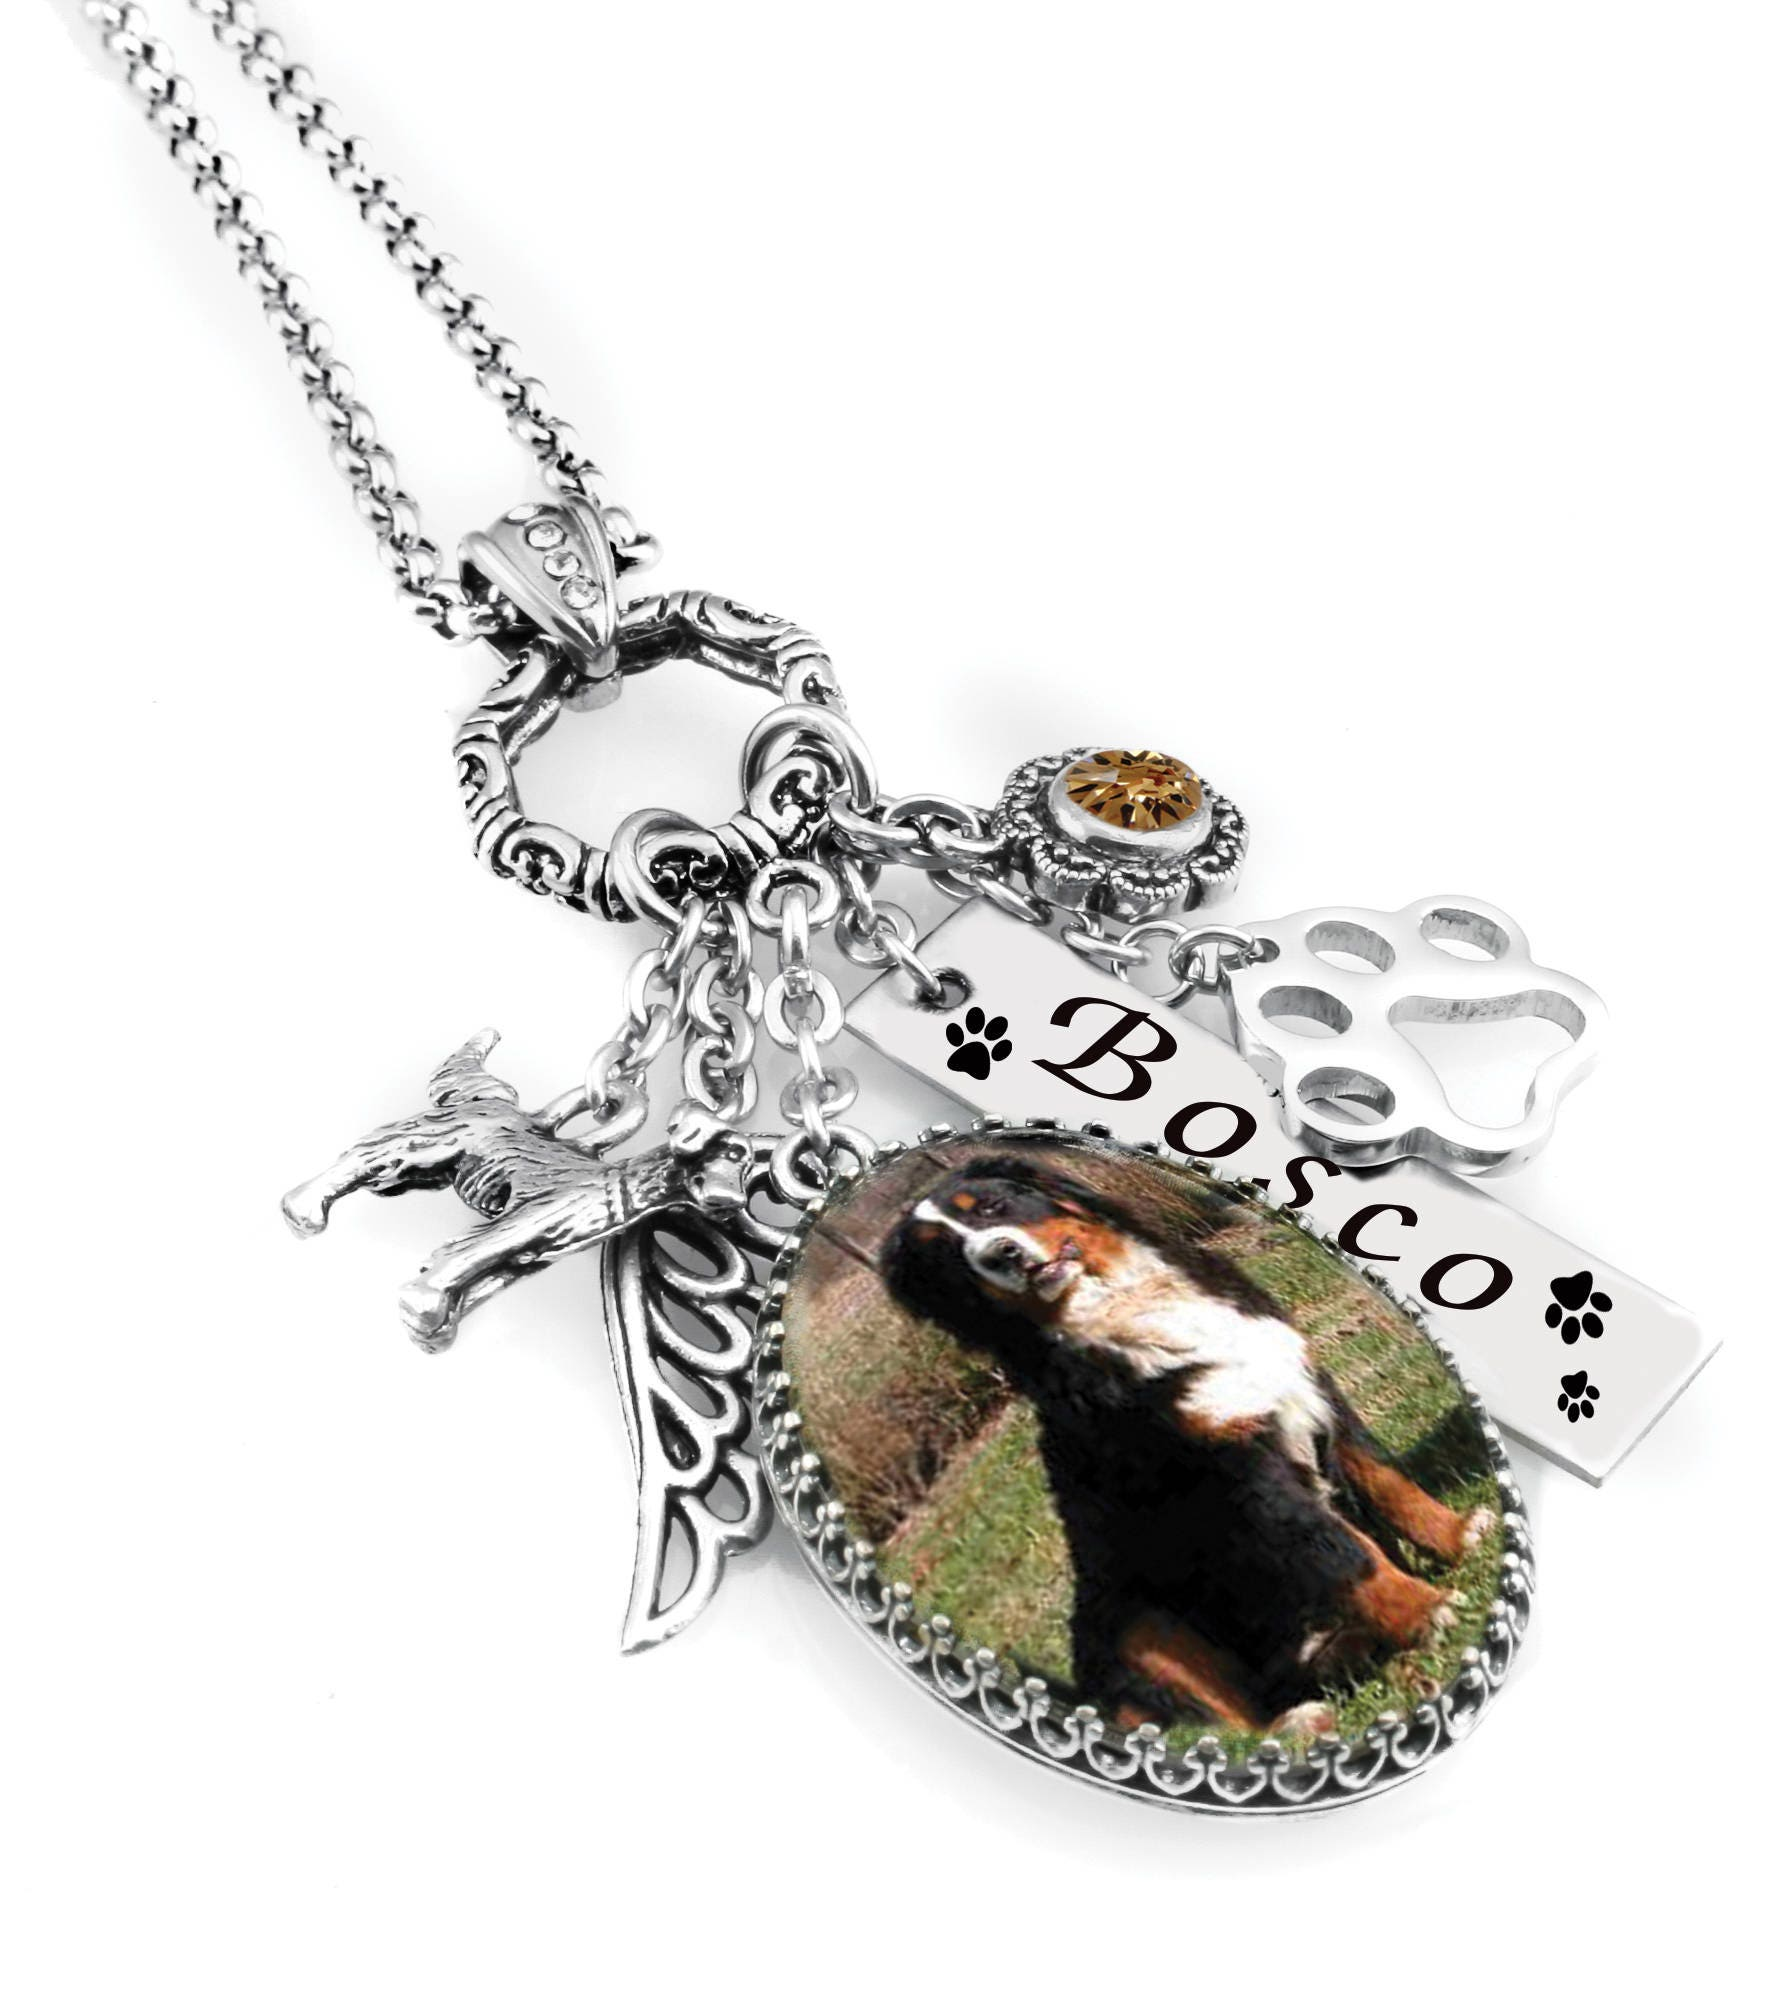 Pet cremation urn ashes jewelry urn jewelry pet ashes for Cremation jewelry for pets ashes